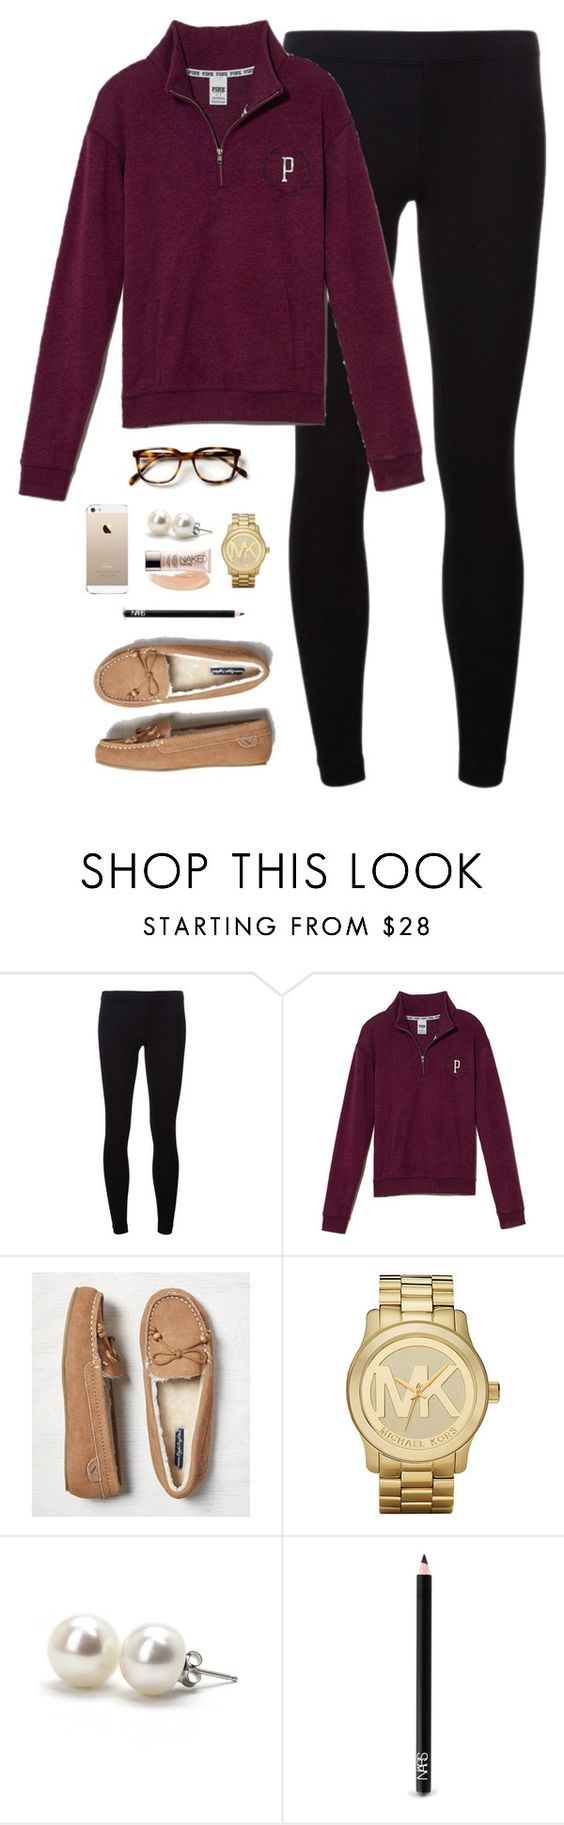 """""""lazy Saturday"""" by classically-preppy ❤ liked on Polyvore featuring James Perse, Victoria's Secret PINK, American Eagle Outfitters, Michael Kors, Bounkit, NARS Cosmetics and Urban Decay"""